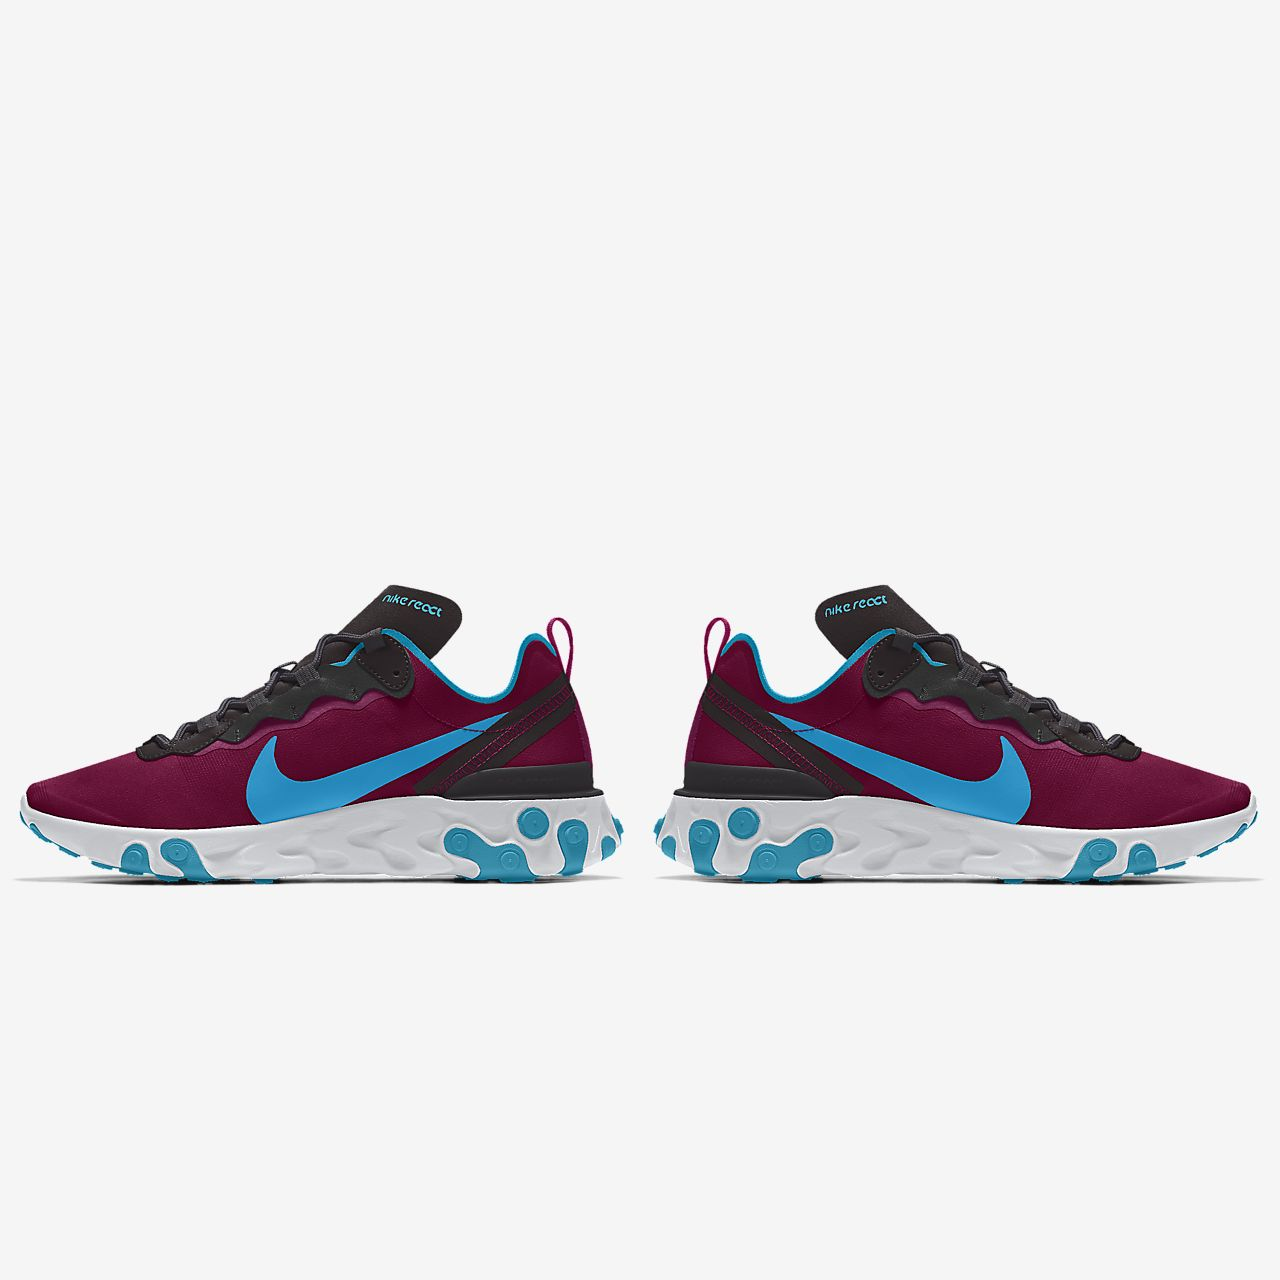 Nike React Element 55 By You personalisierbarer Damen Freizeitschuh